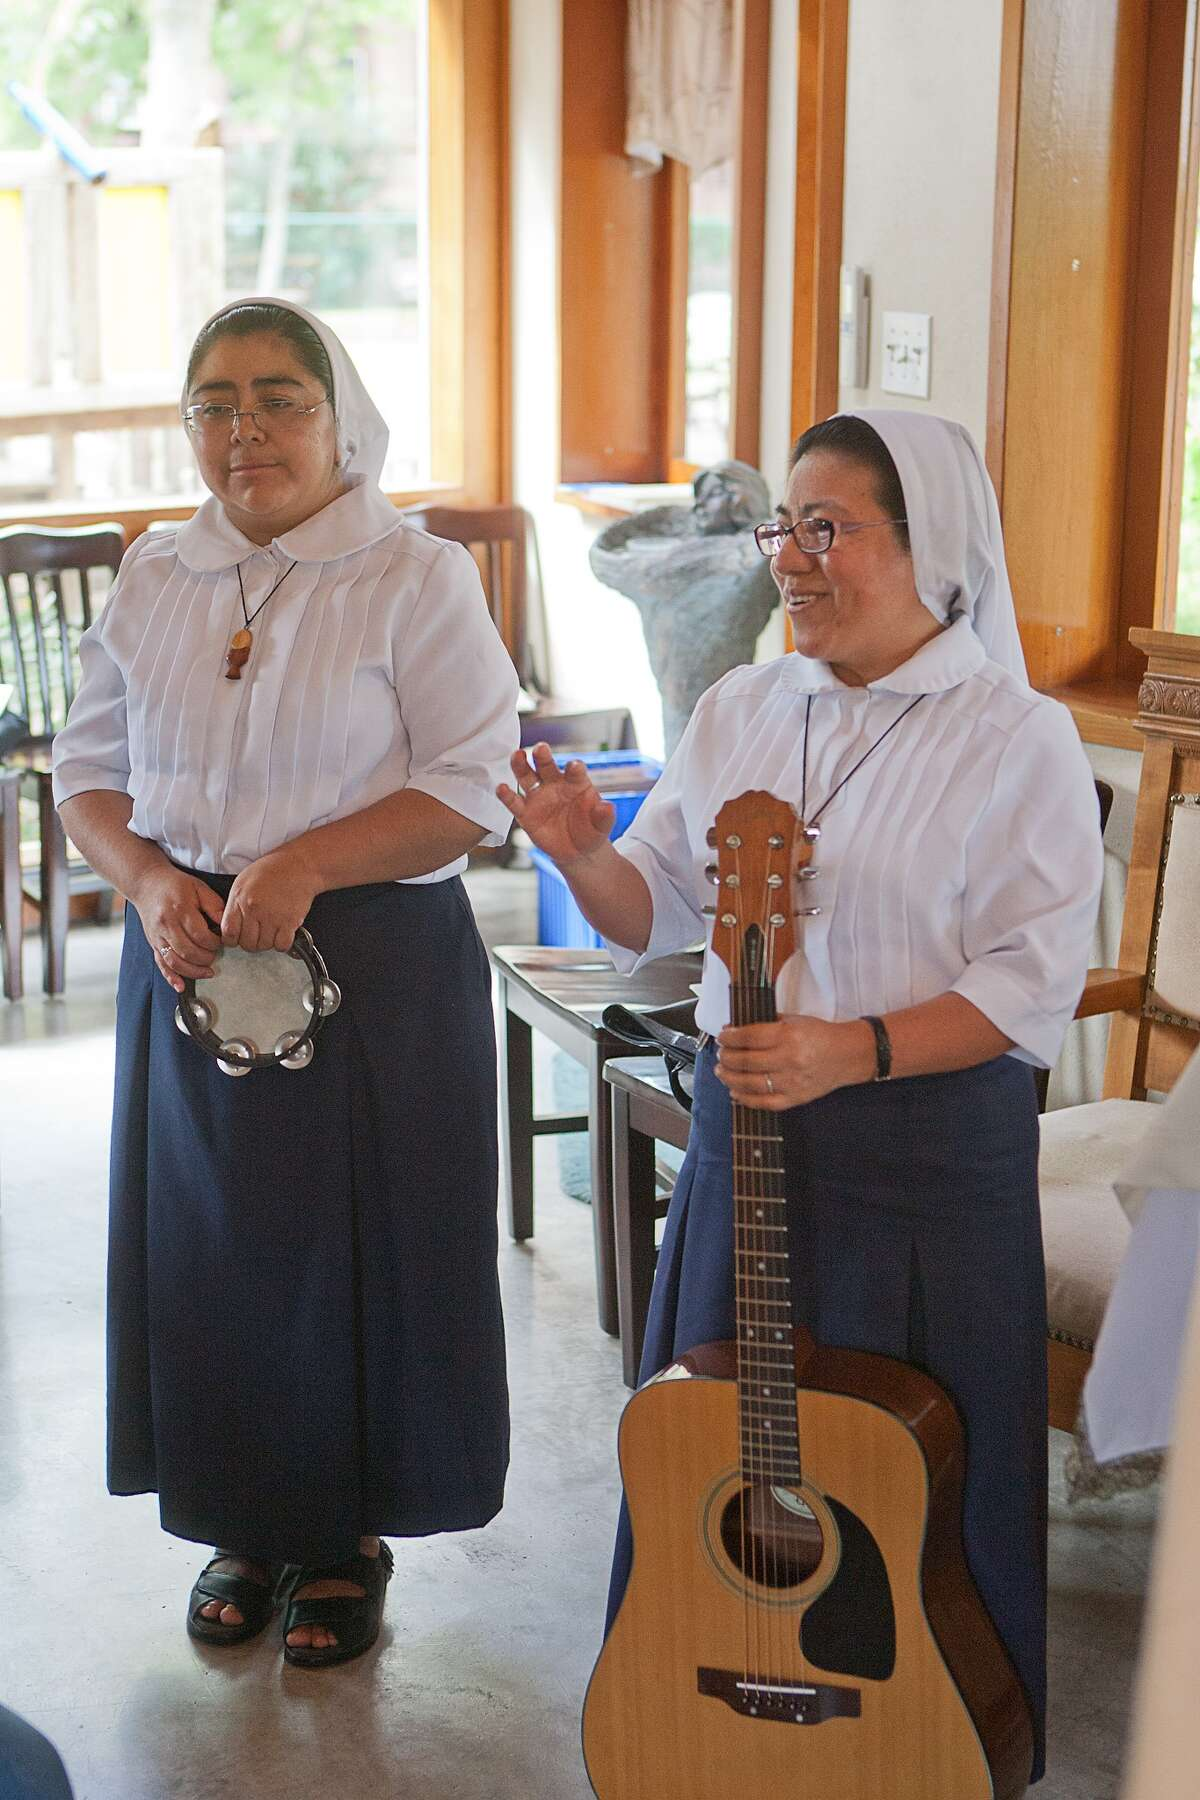 Magnificat House resident and transportation coordinator Larry Burt will carry the altar for the group's Las Posadas celebration. Sister Maria Chali, below at left, and Sister Gabina are involved in planning the event.